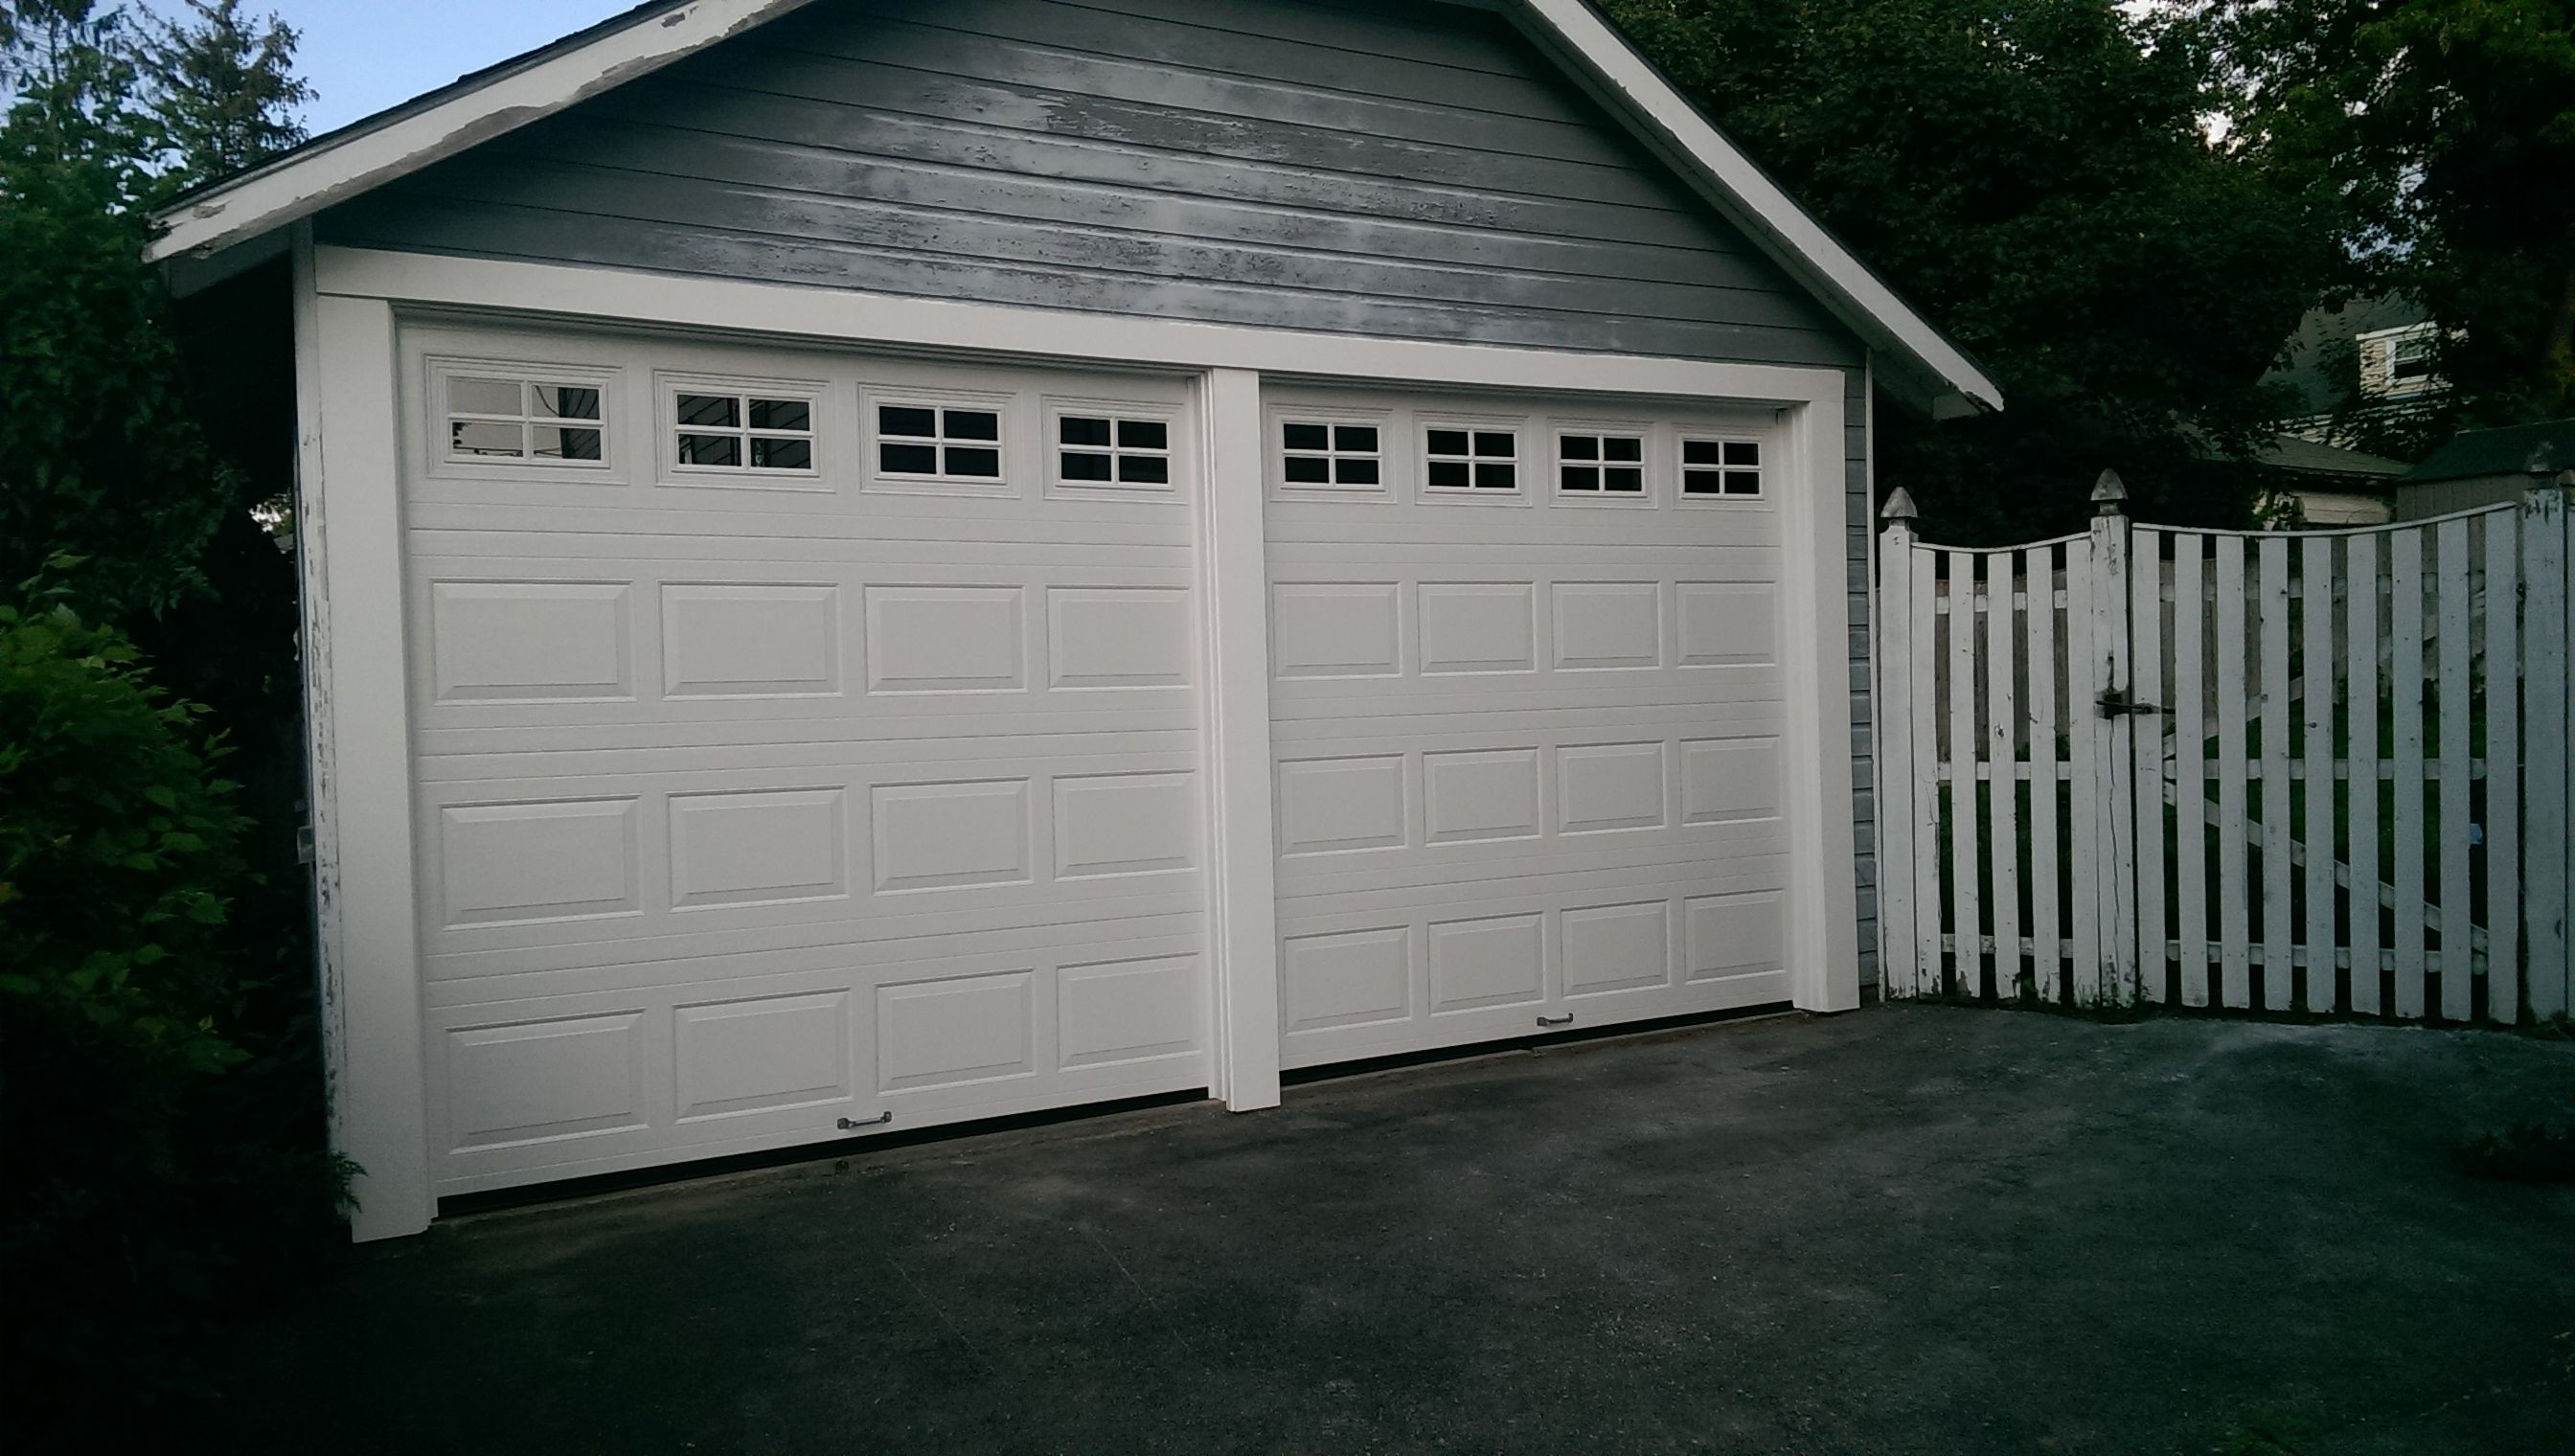 door tos garage diy insulated rooms insulate how and spaces to a